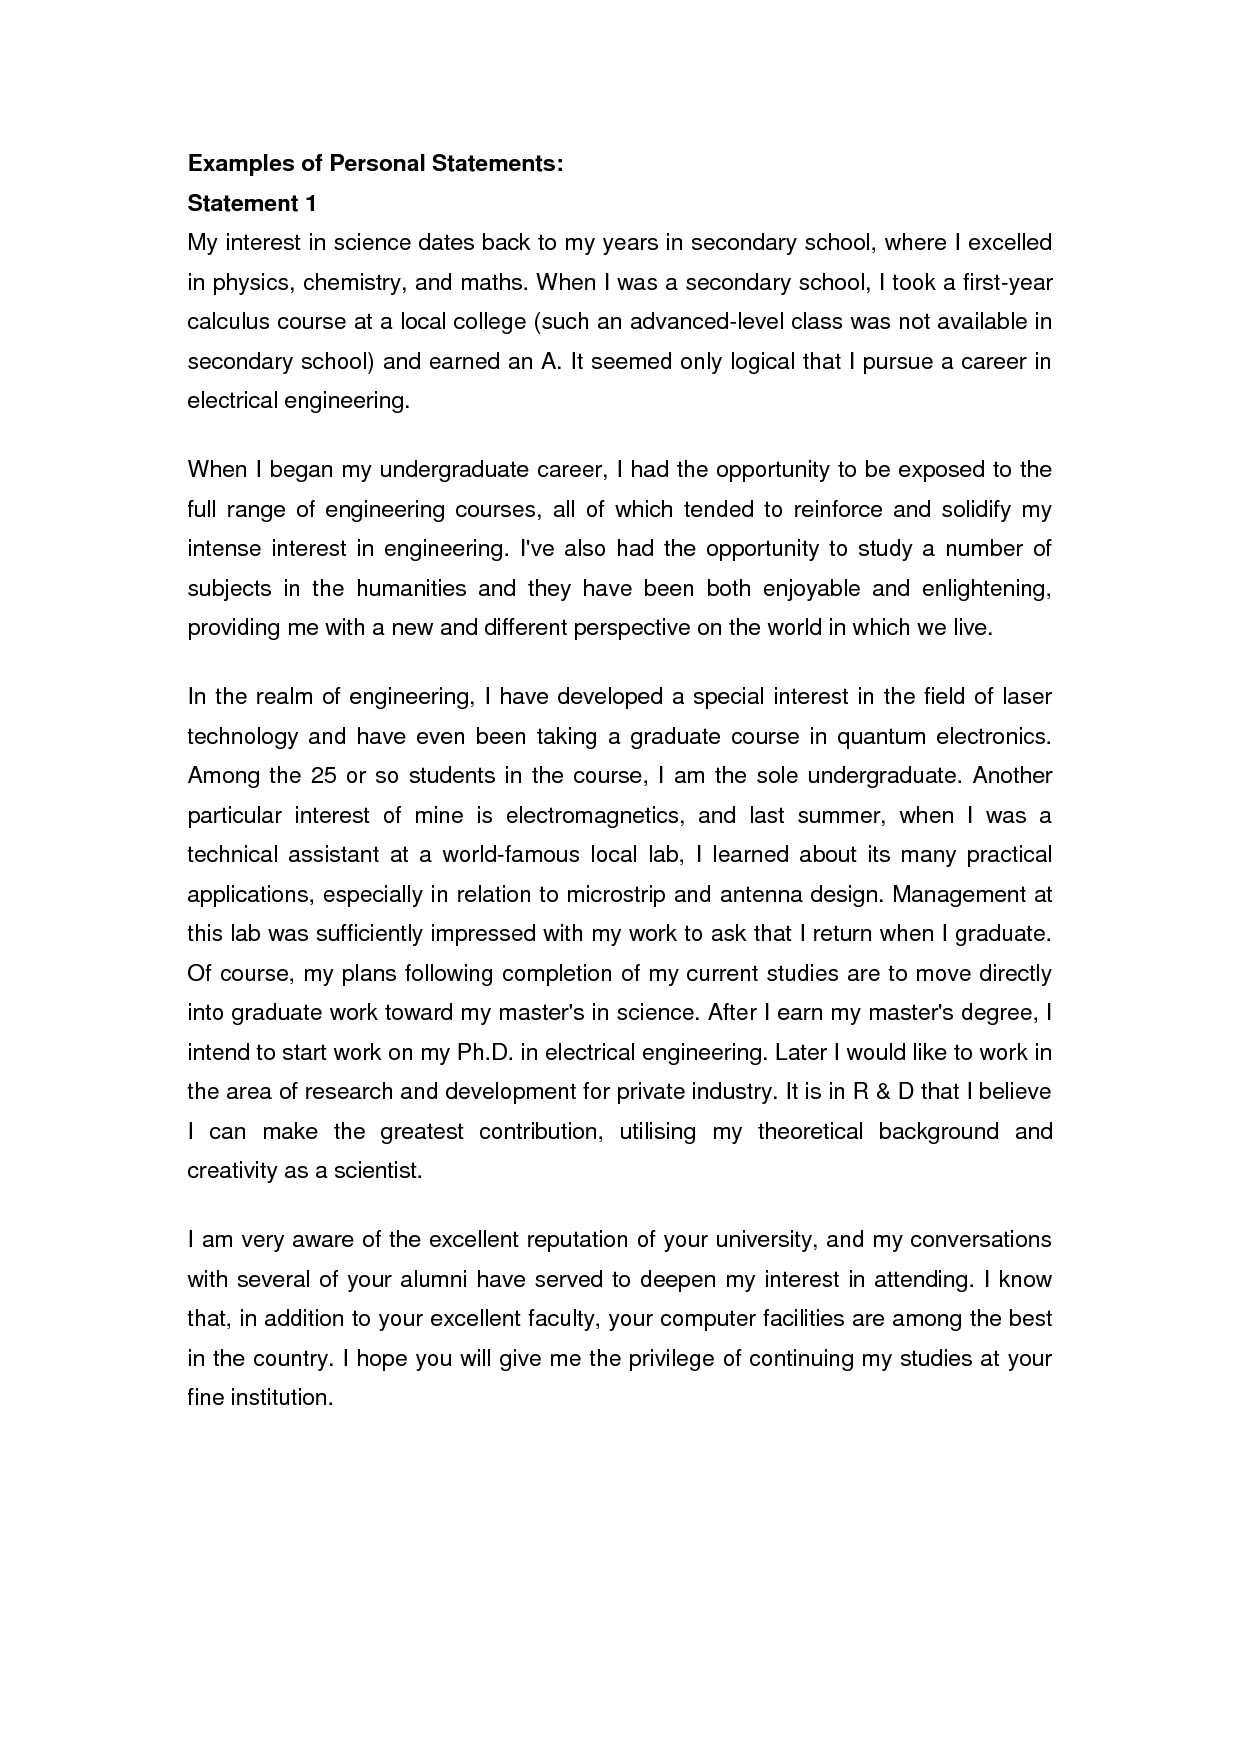 Personal Statement Essay For College